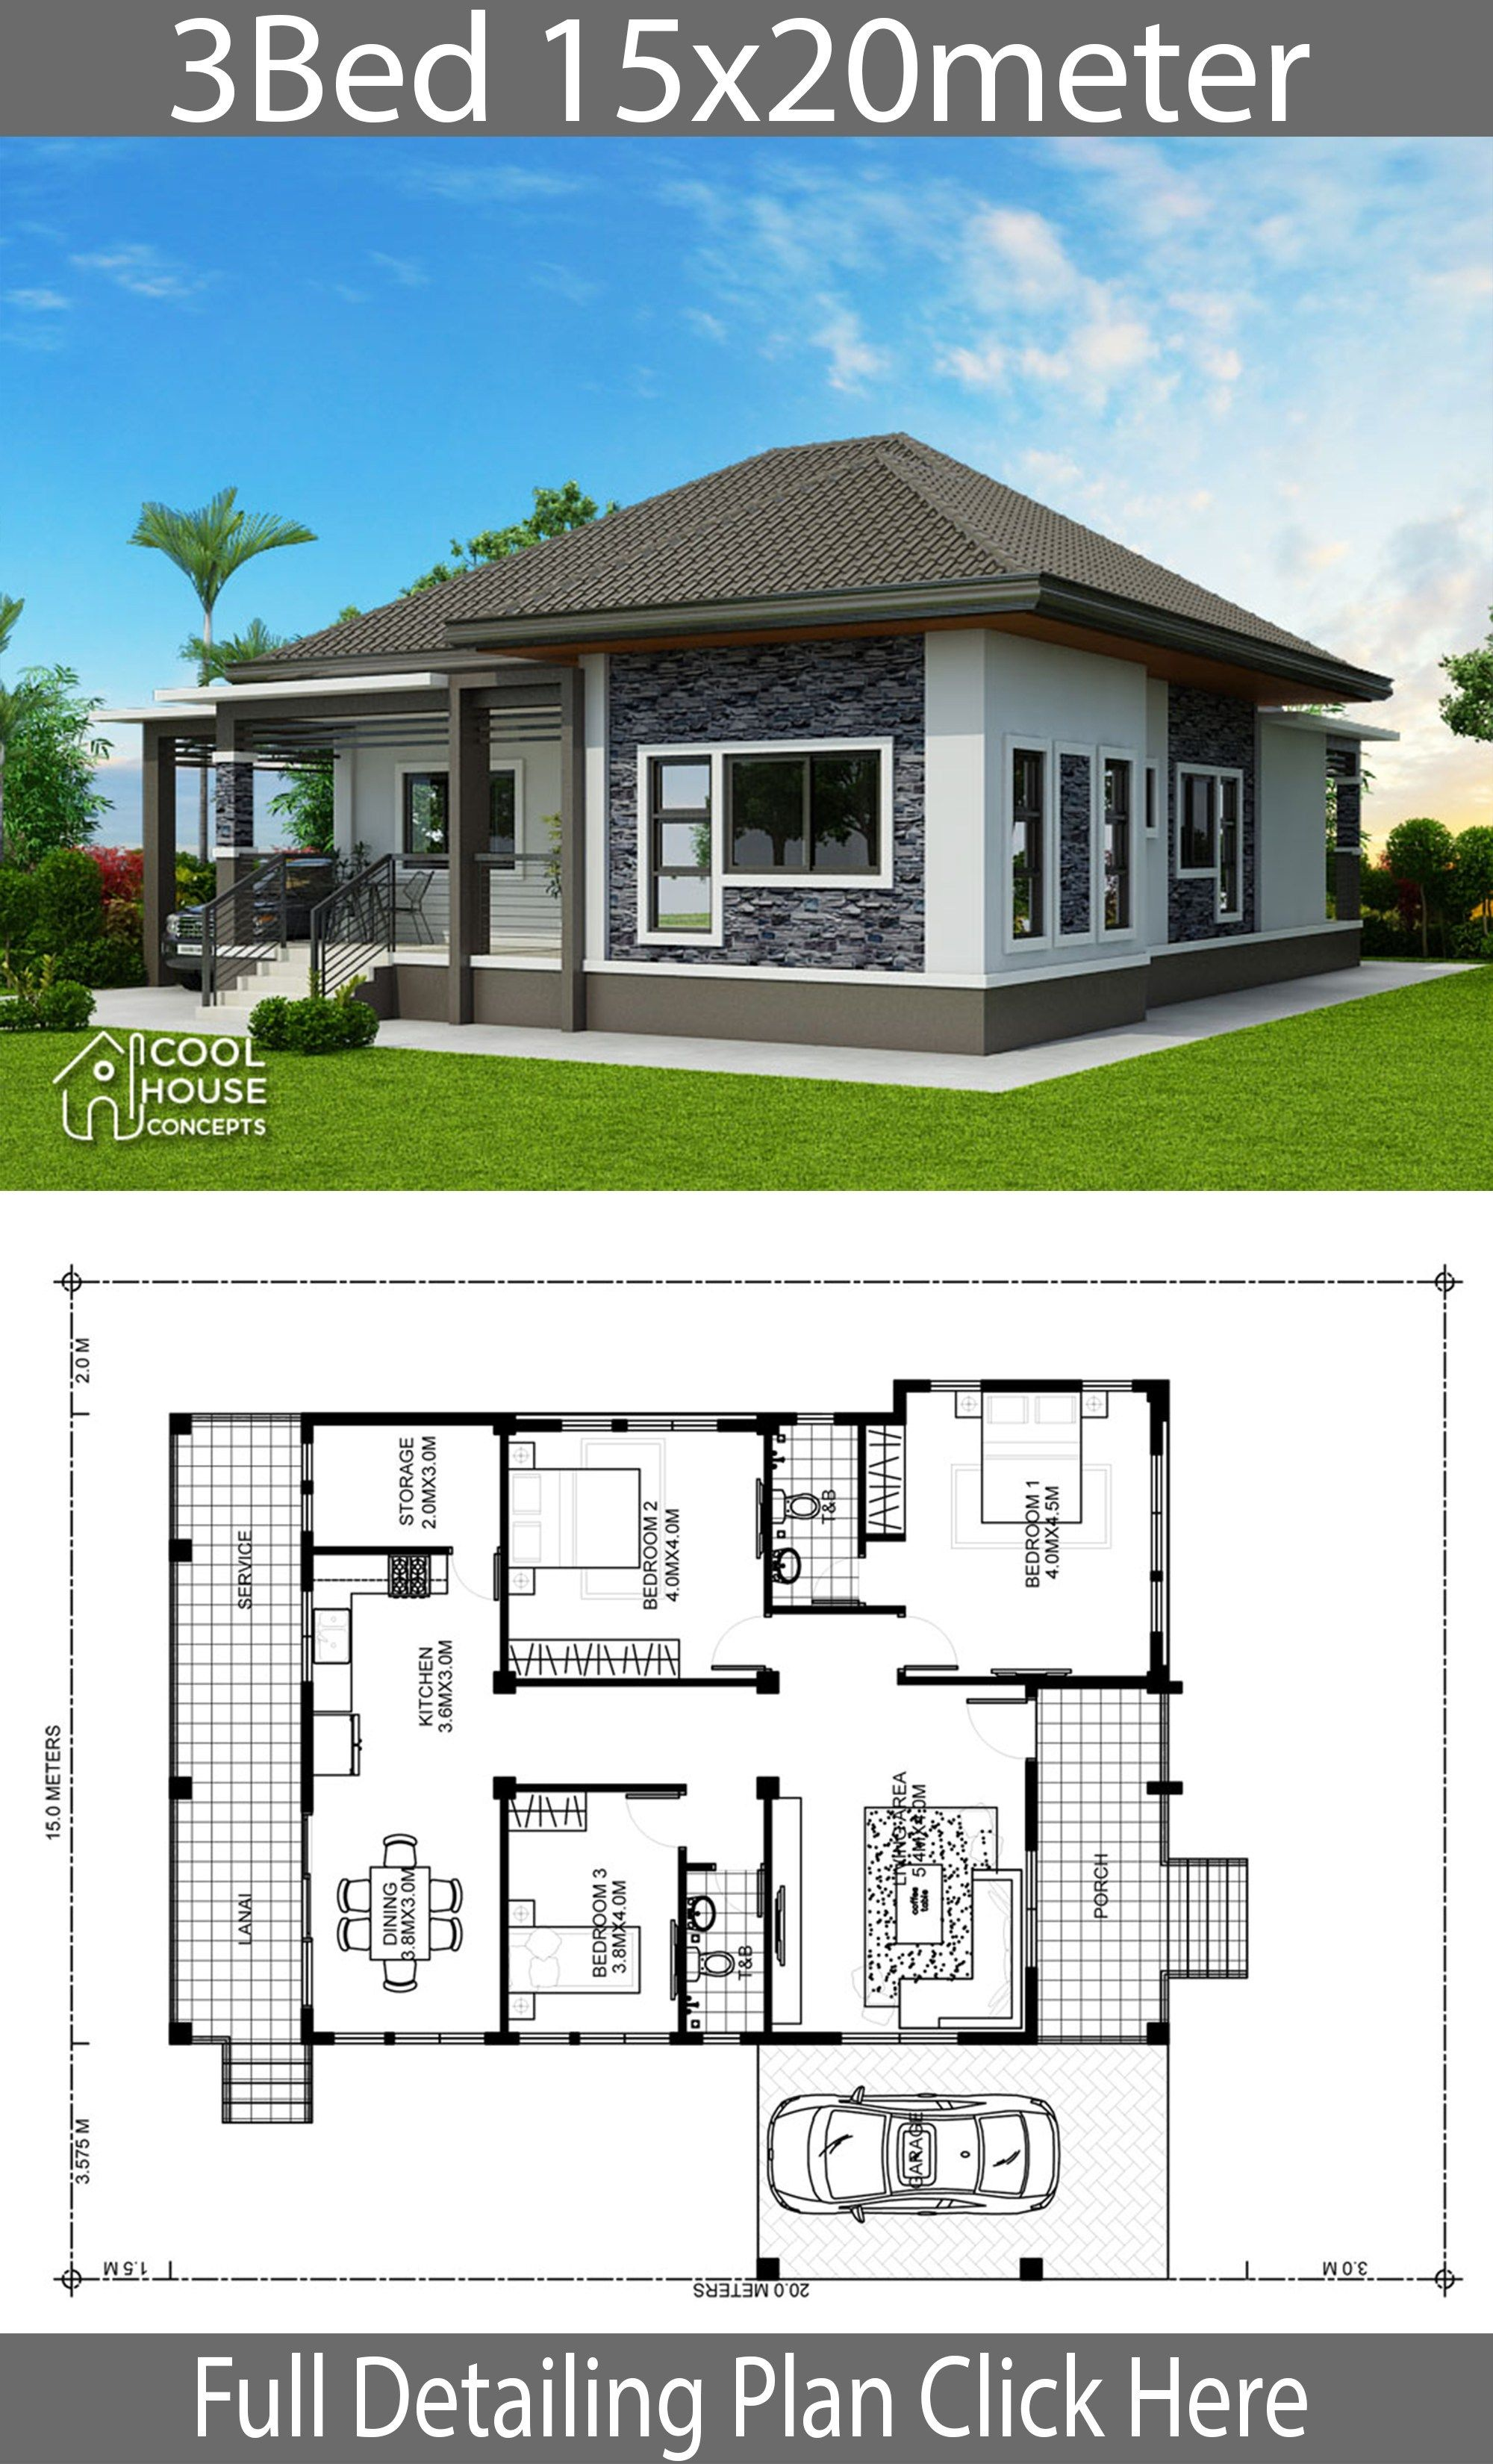 Home Design Plan 15x20m With 3 Bedroomshouse Description One Car Parking And Gard Philippines House Design Modern Bungalow House Small House Design Philippines